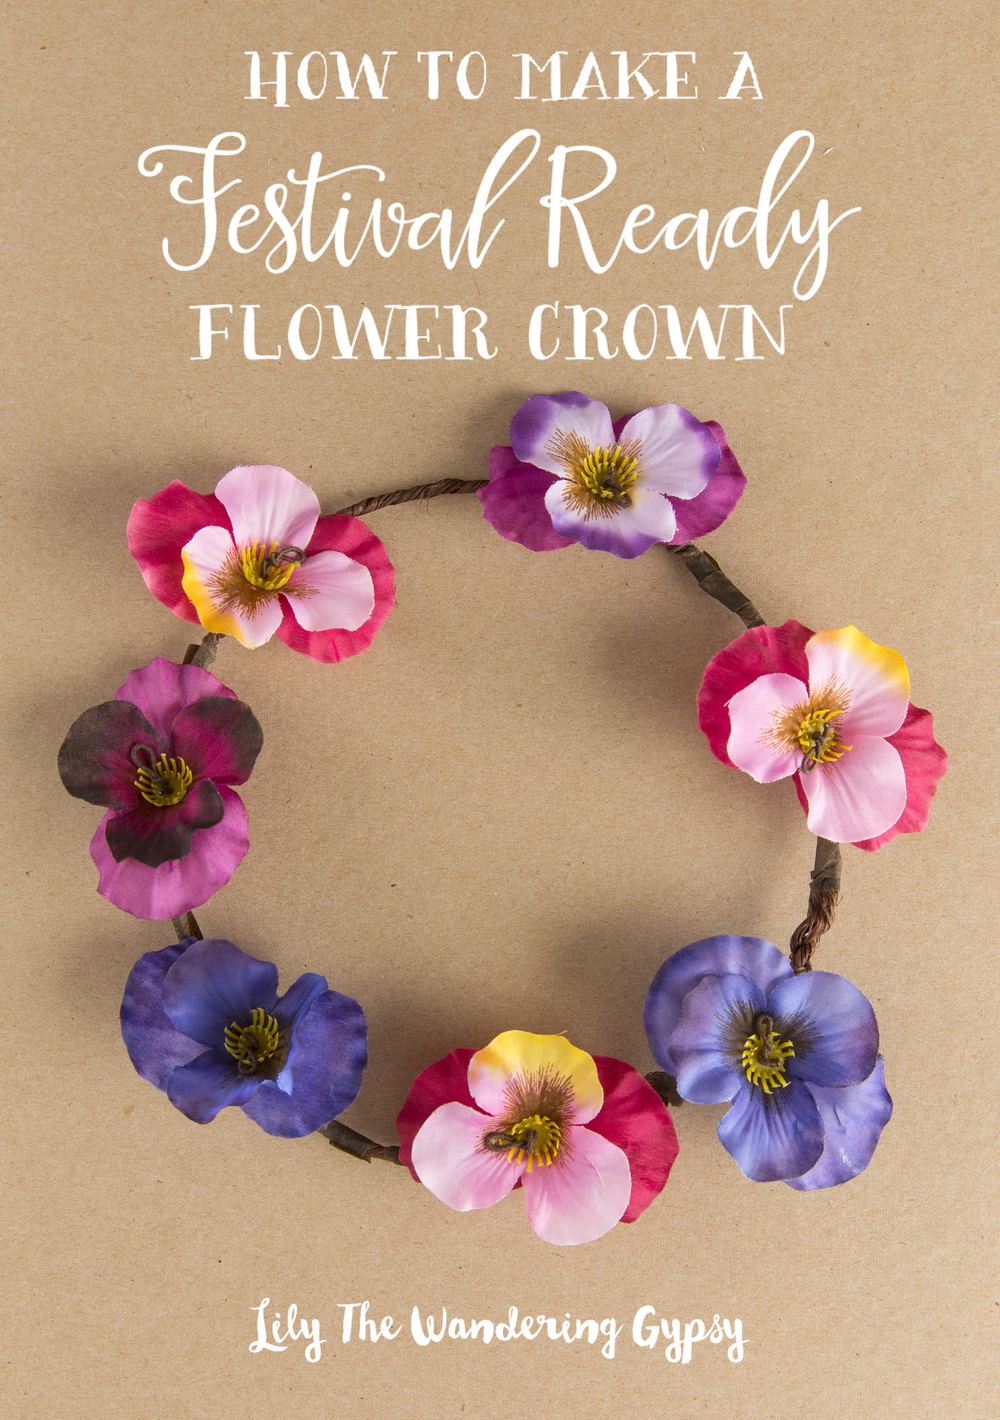 How to make a festival ready flower crown lily the wandering gypsy how to make a festival ready flower crown izmirmasajfo Images